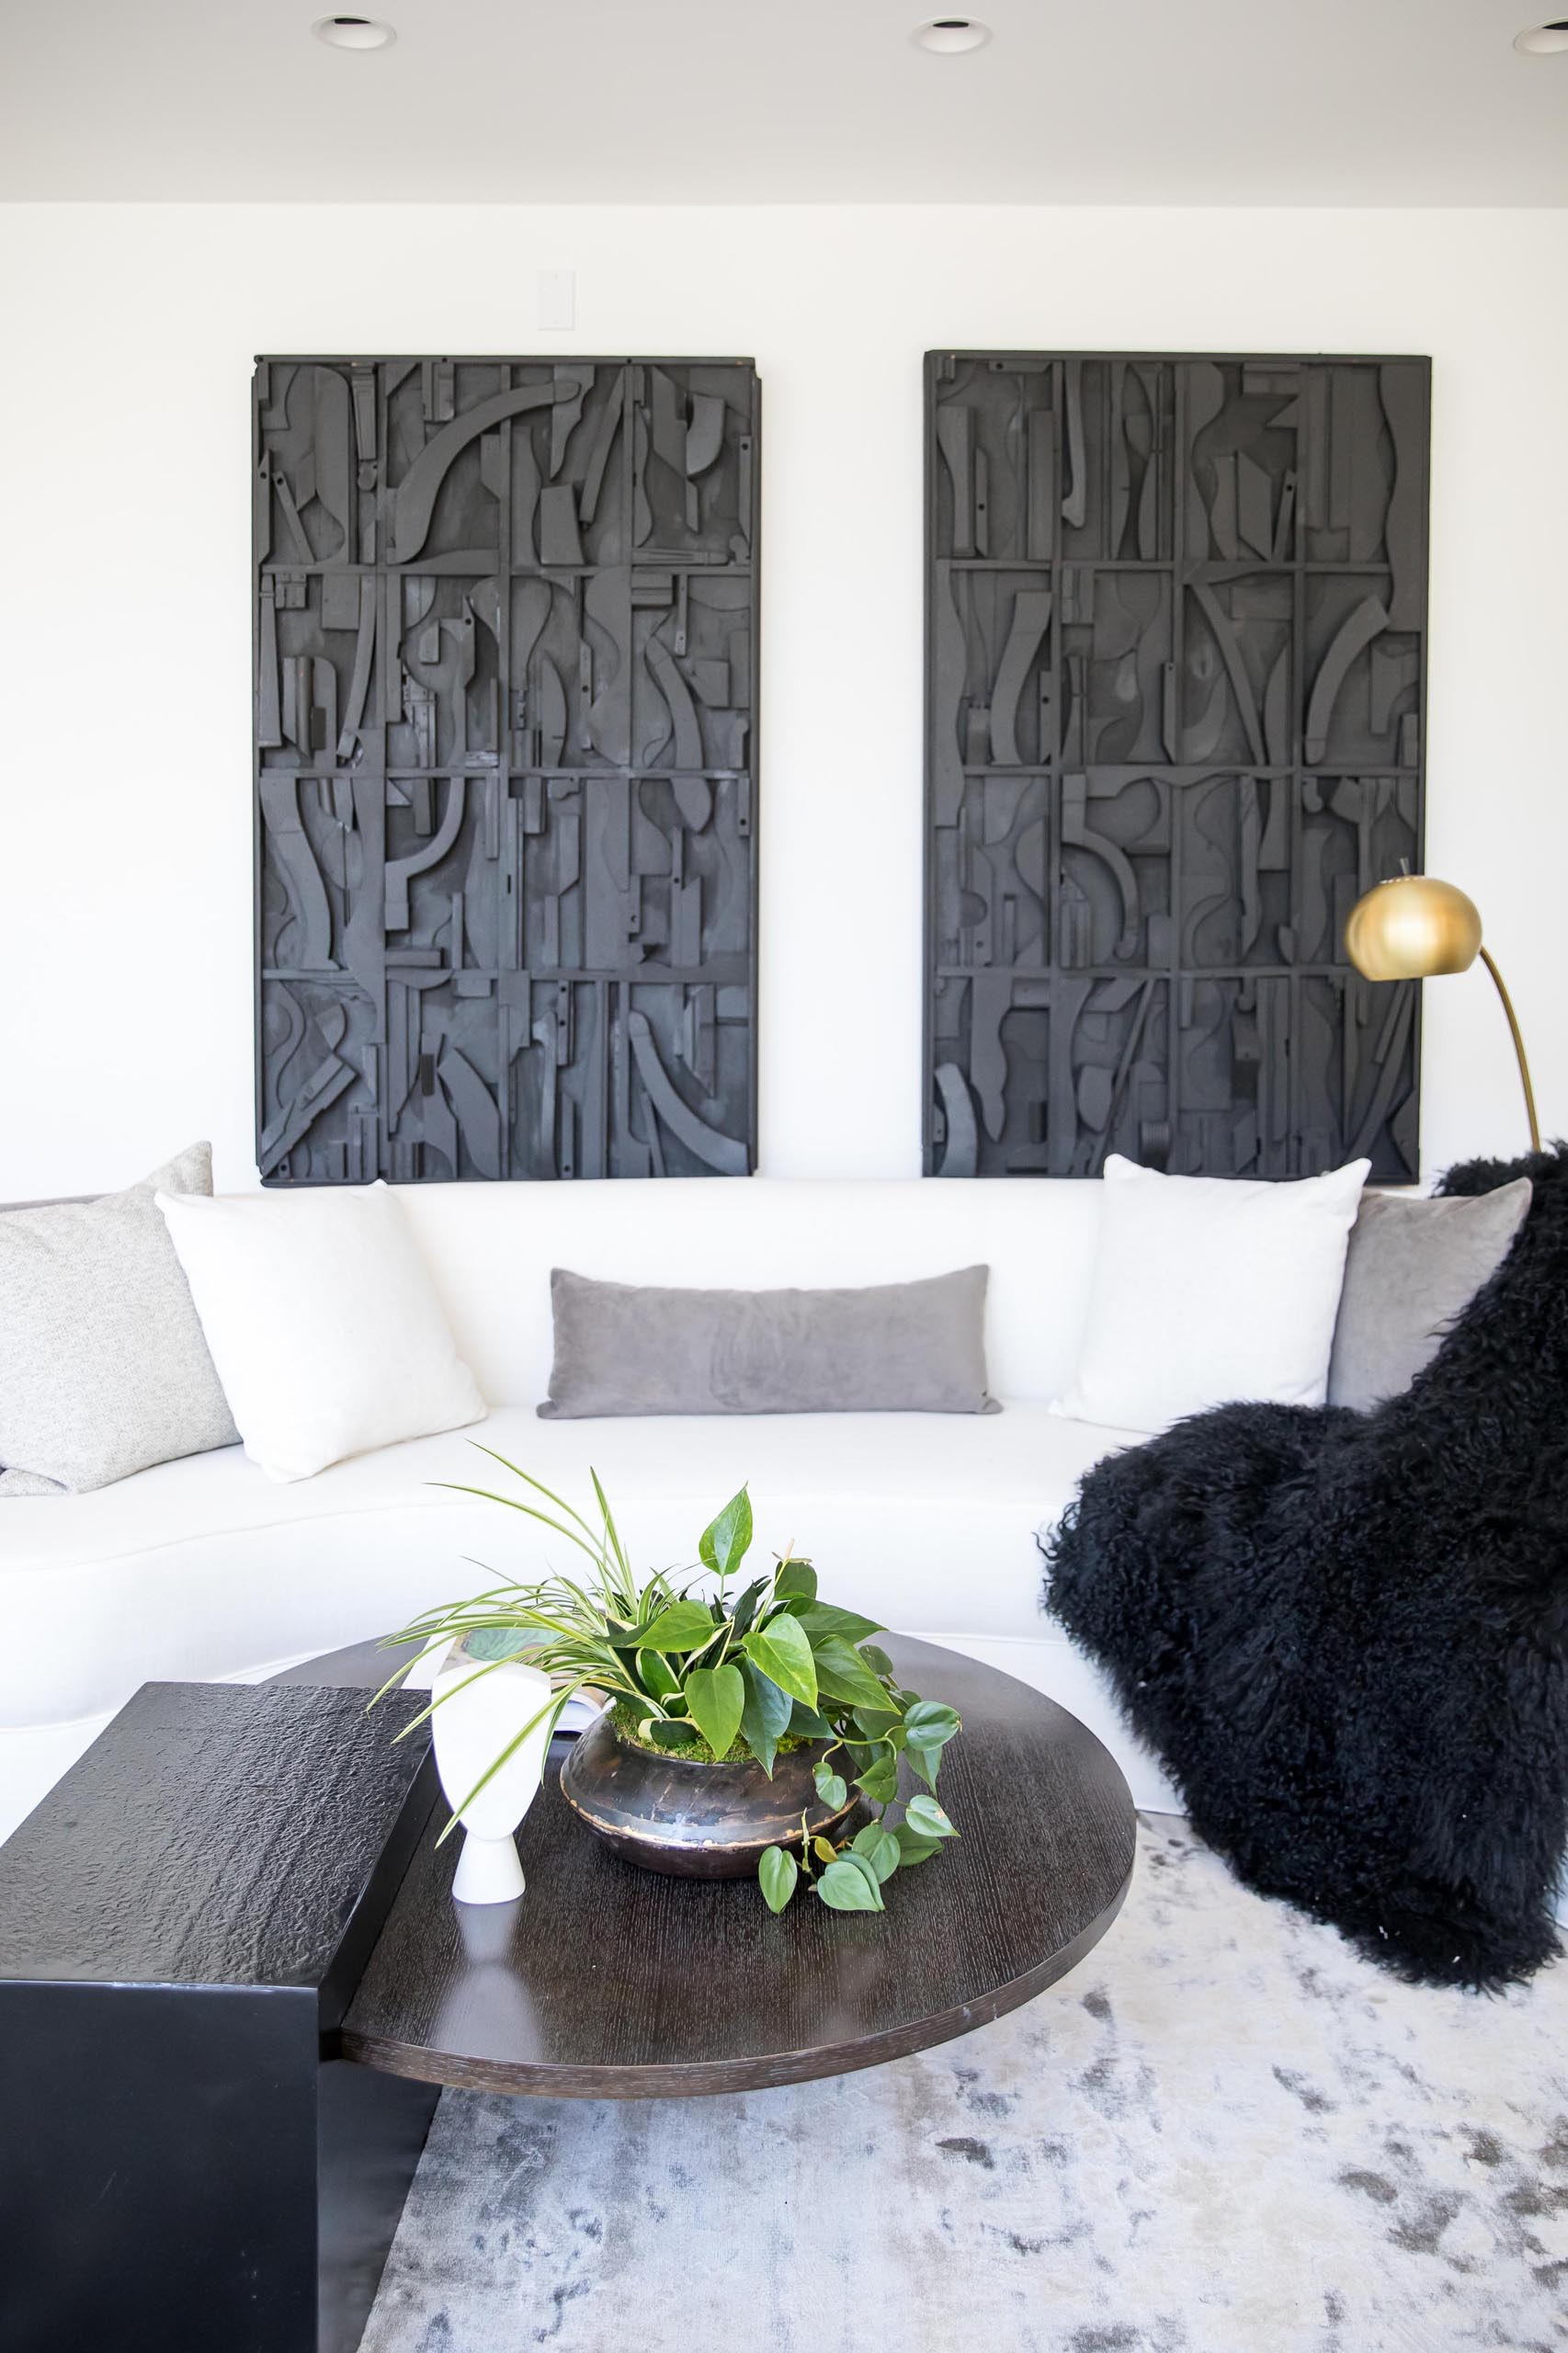 A modern living room with a white sofa and black artwork.